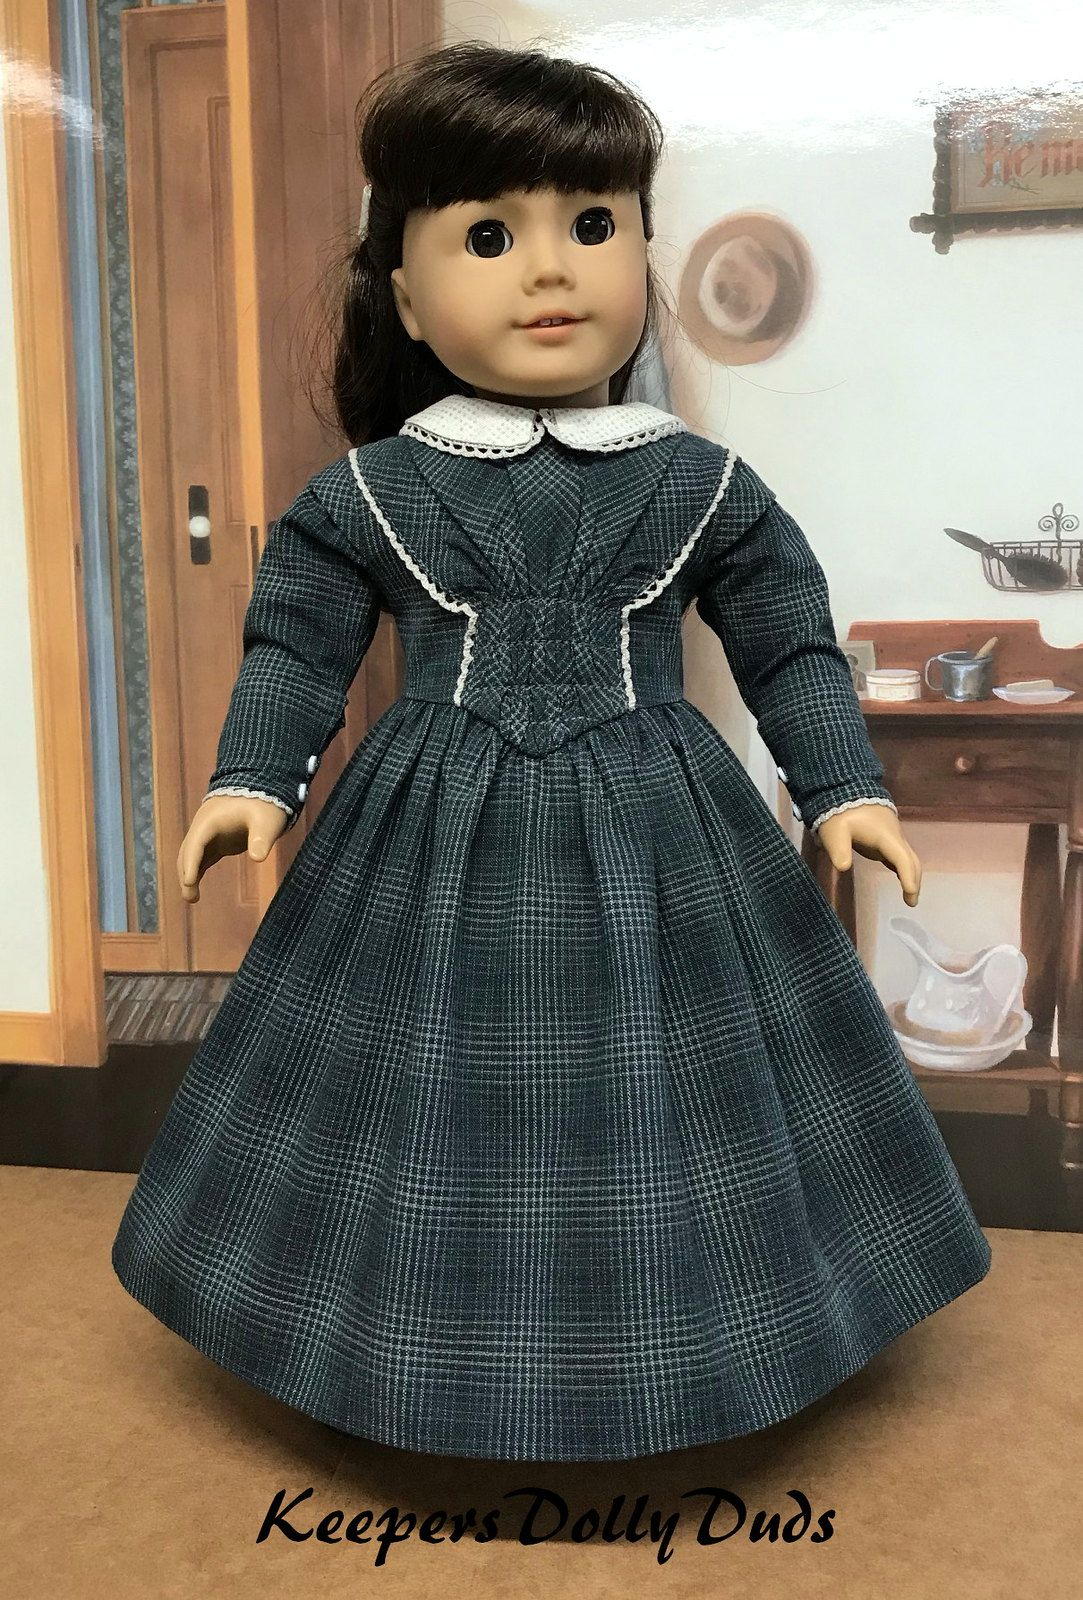 1845-50 Ladies Dress fits American Girl Dolls #historicaldollclothes